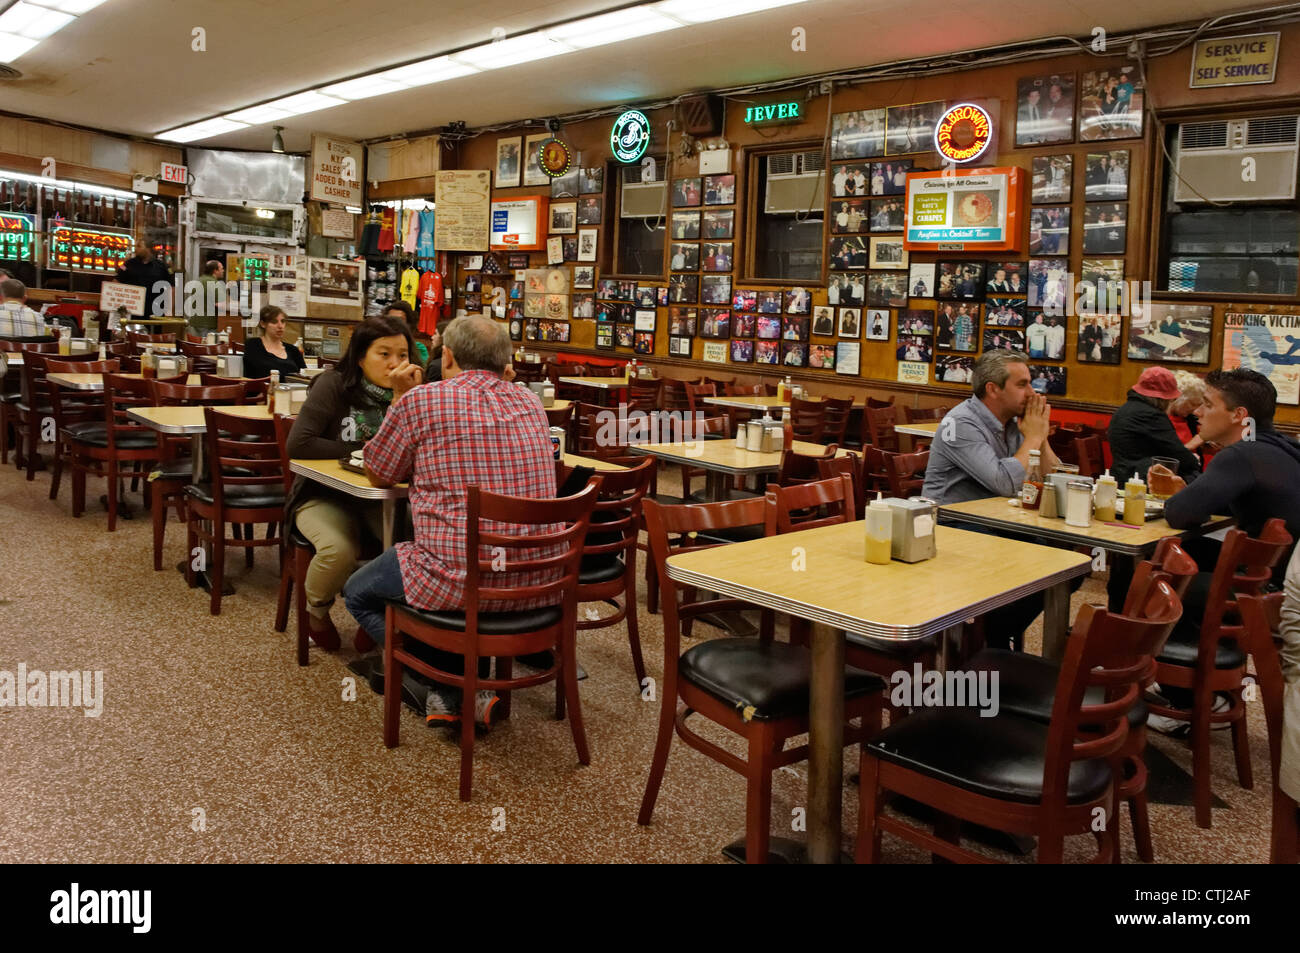 Katz's Delicatessen, film lieu de ' Quand Harry rencontre Sally ', New York, USA, Photo Stock